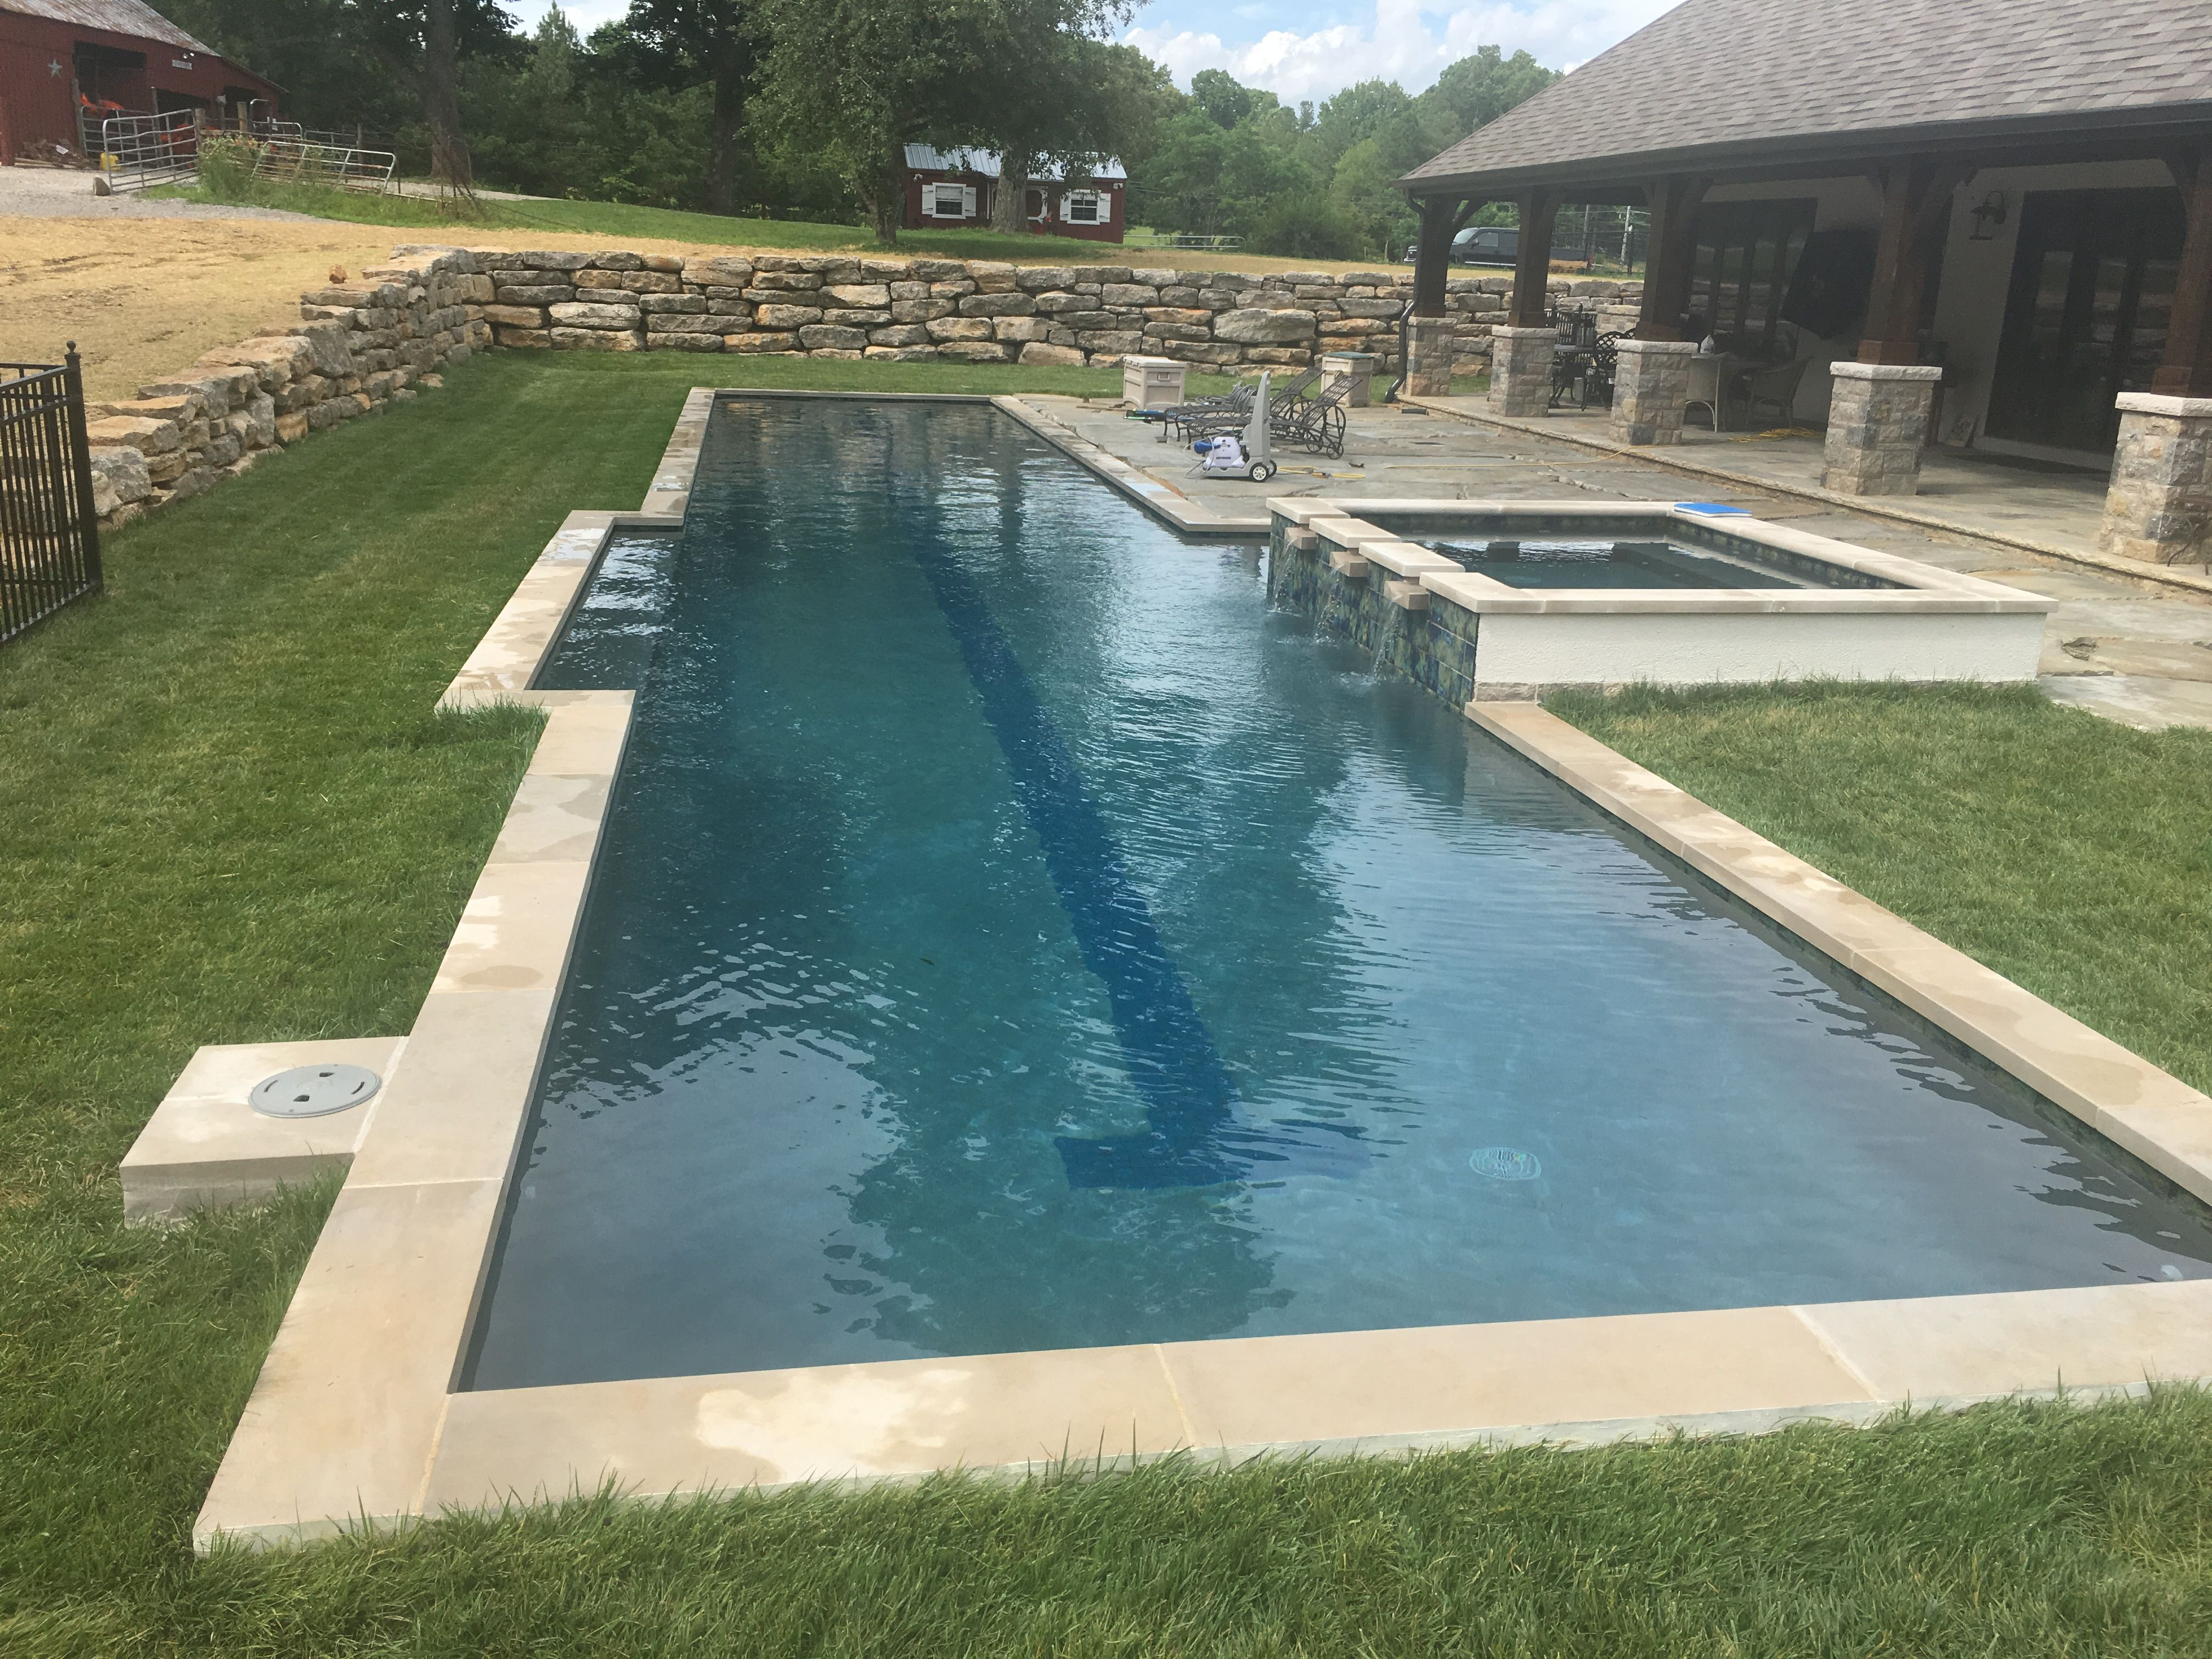 Fantastic Backyard Lap Pool With Spa 25 Yards Built By Absolute Pools In Nashville Lap Pools Backyard Backyard Pool Lap Pool Designs